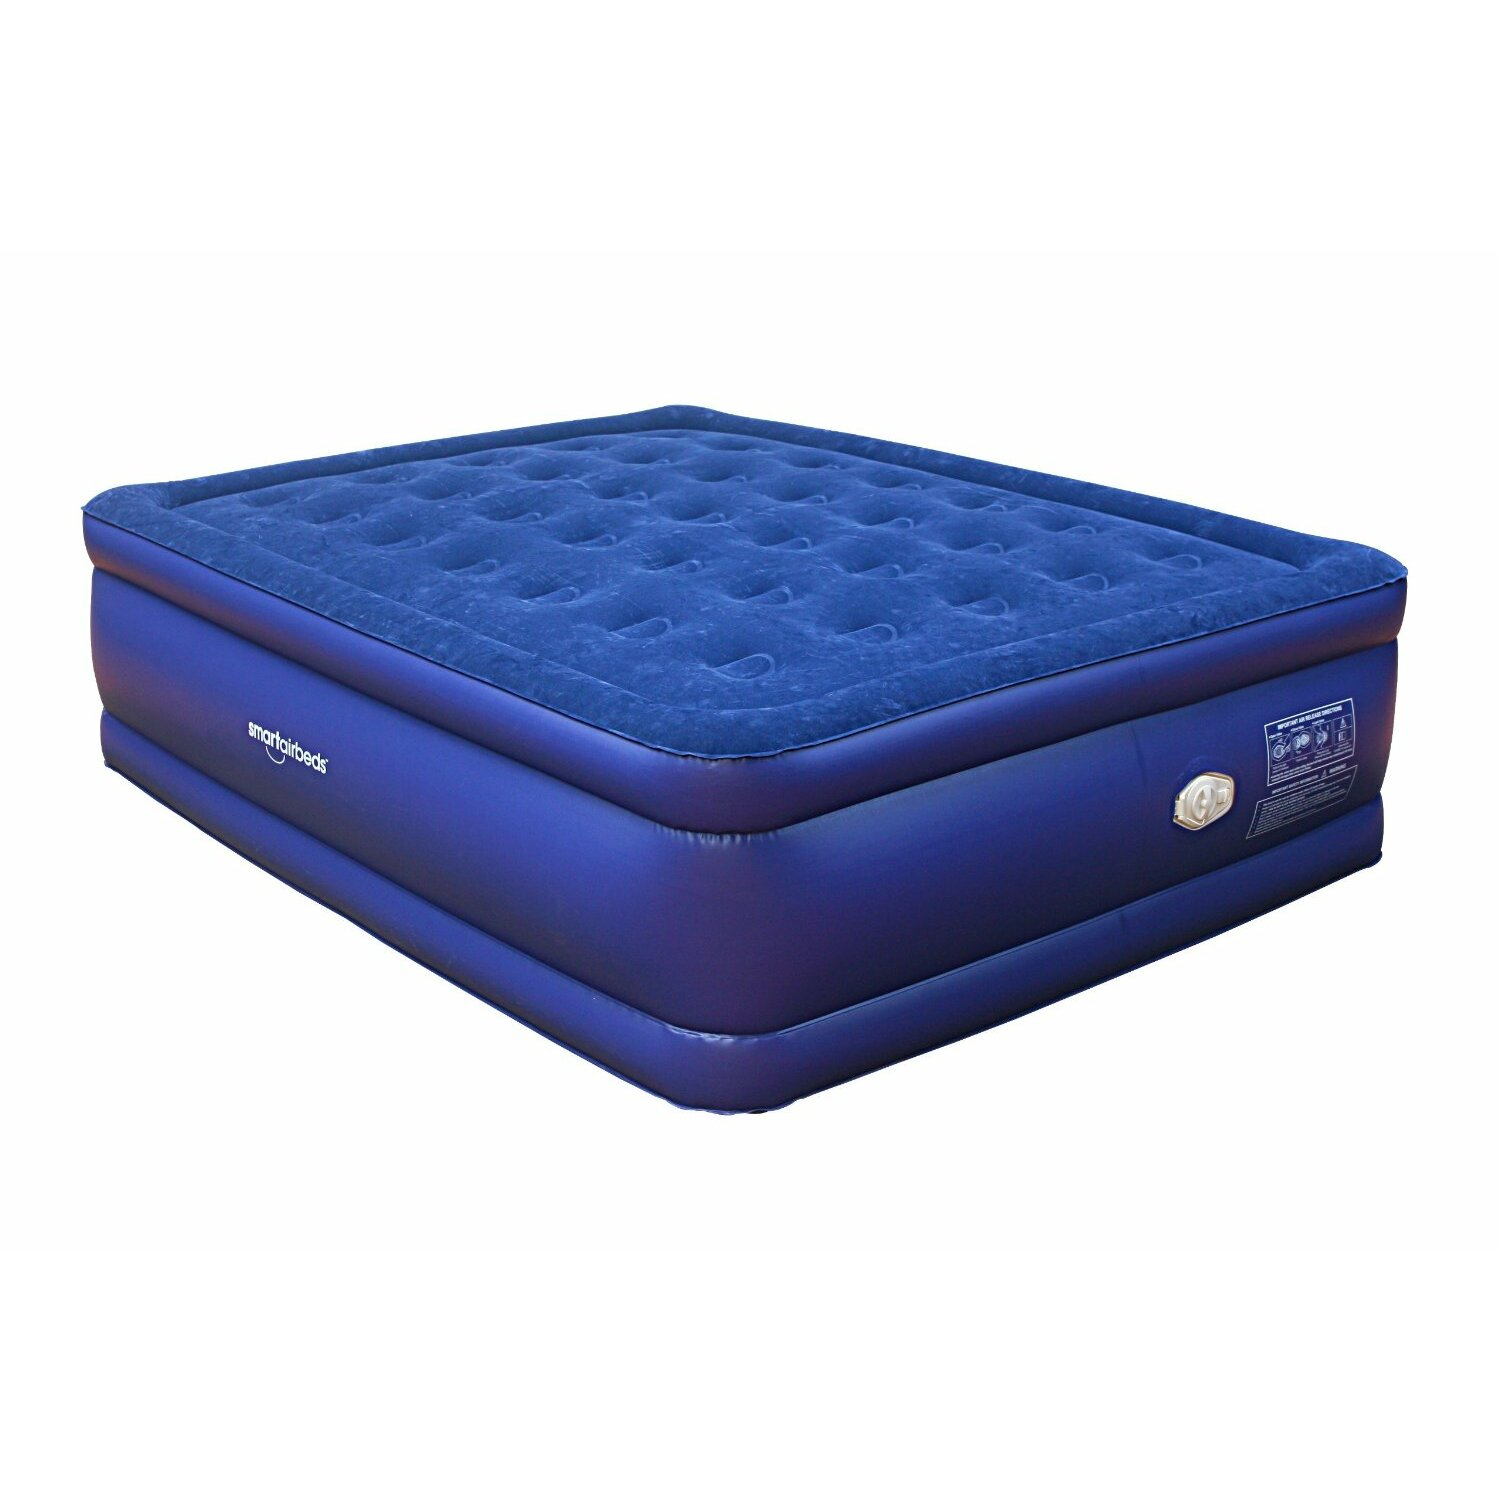 Smart Air Beds 21 Air Mattress Reviews Wayfair